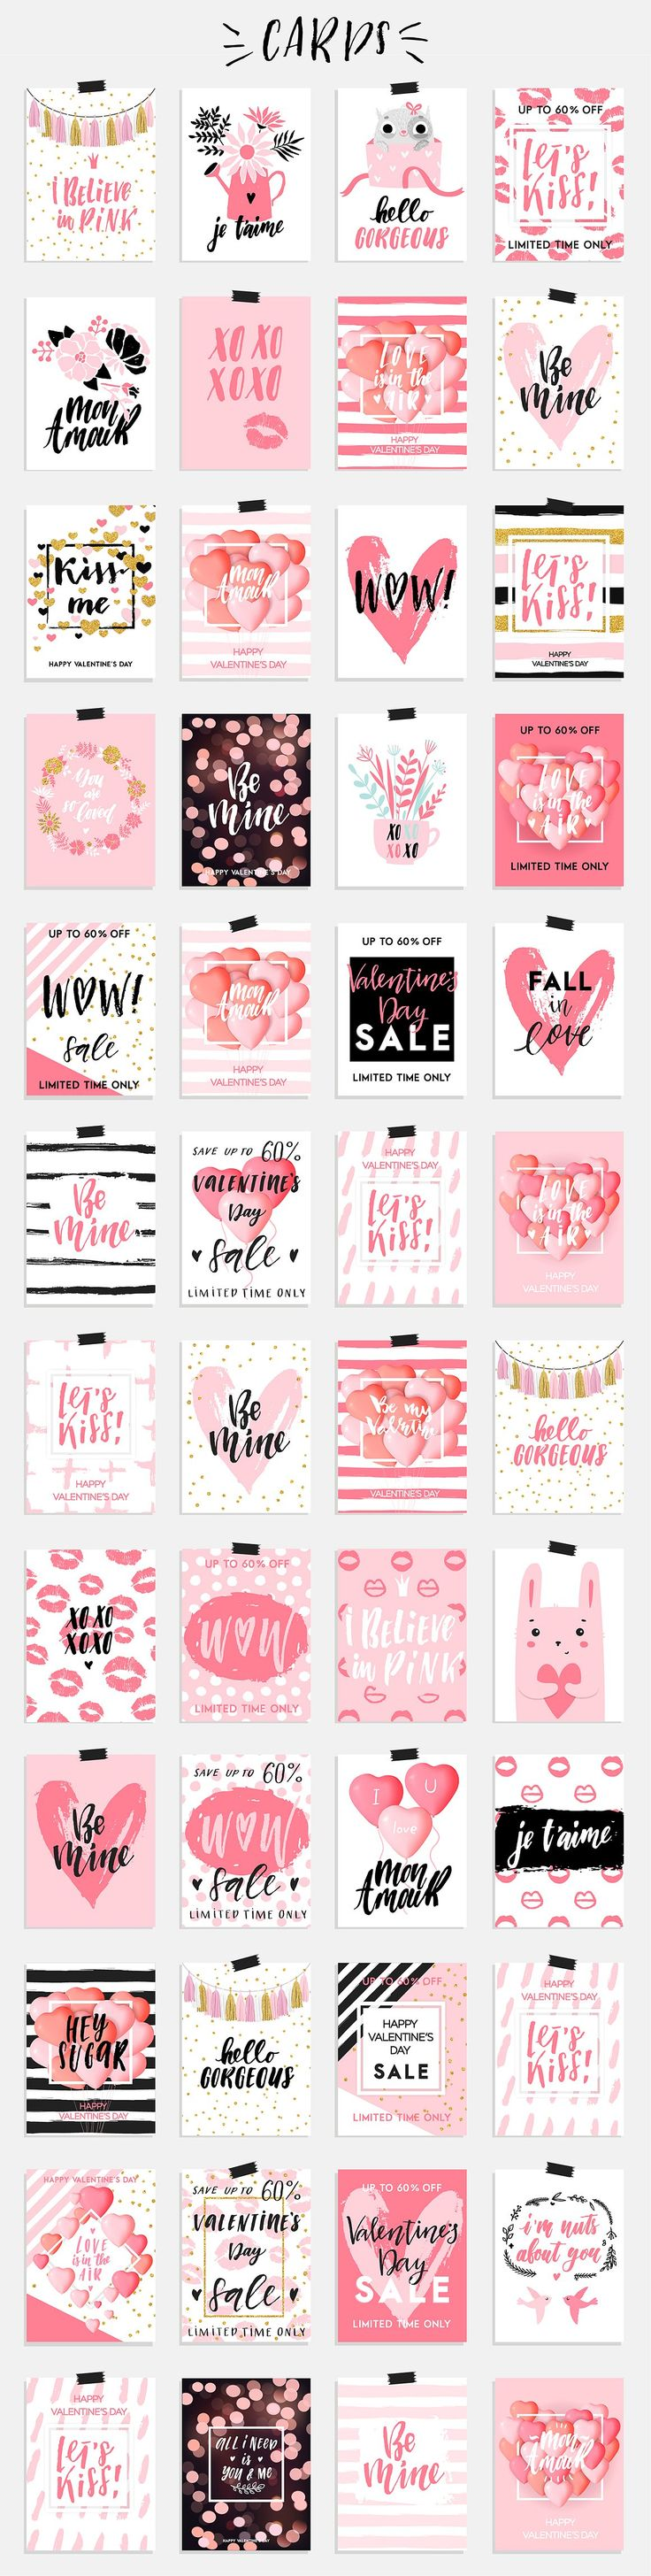 We pleased to present new Valentine's Day big collection - cards, tags, overlays, seamless patterns and much more. Hand drawn elements and lettering made with love to decorate gifts for your loved ones. Click here to buy.